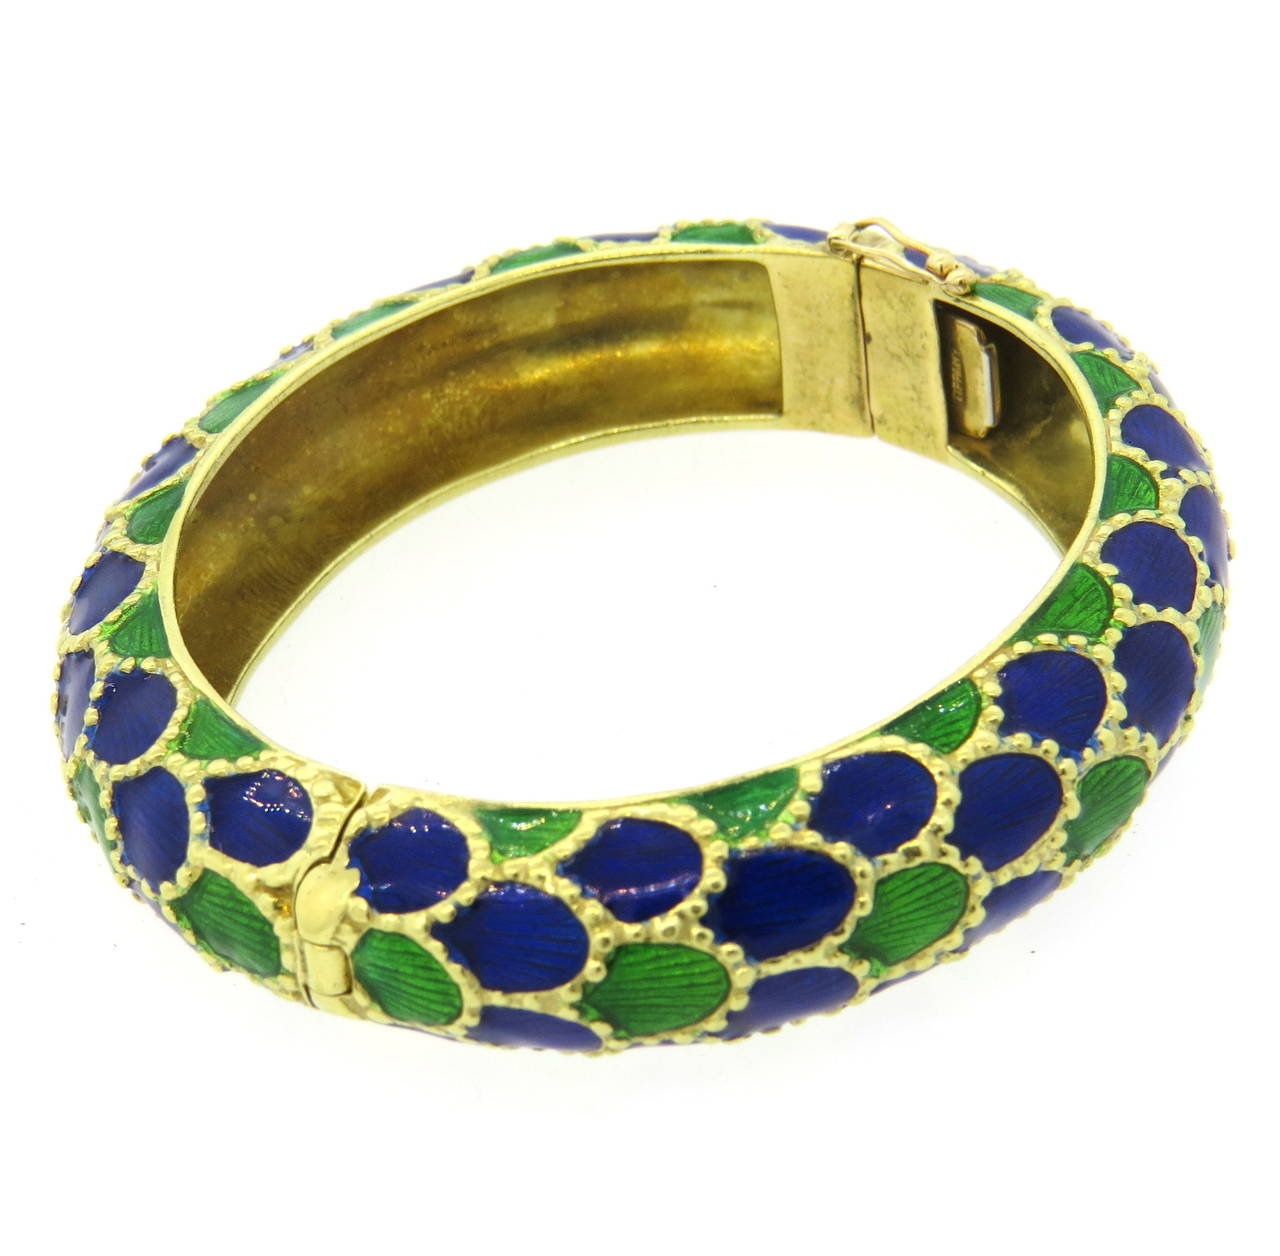 An 18k yellow gold bangle with a scale motif, coated with blue and green enamel.   the bangle comfortably fits up to a 7